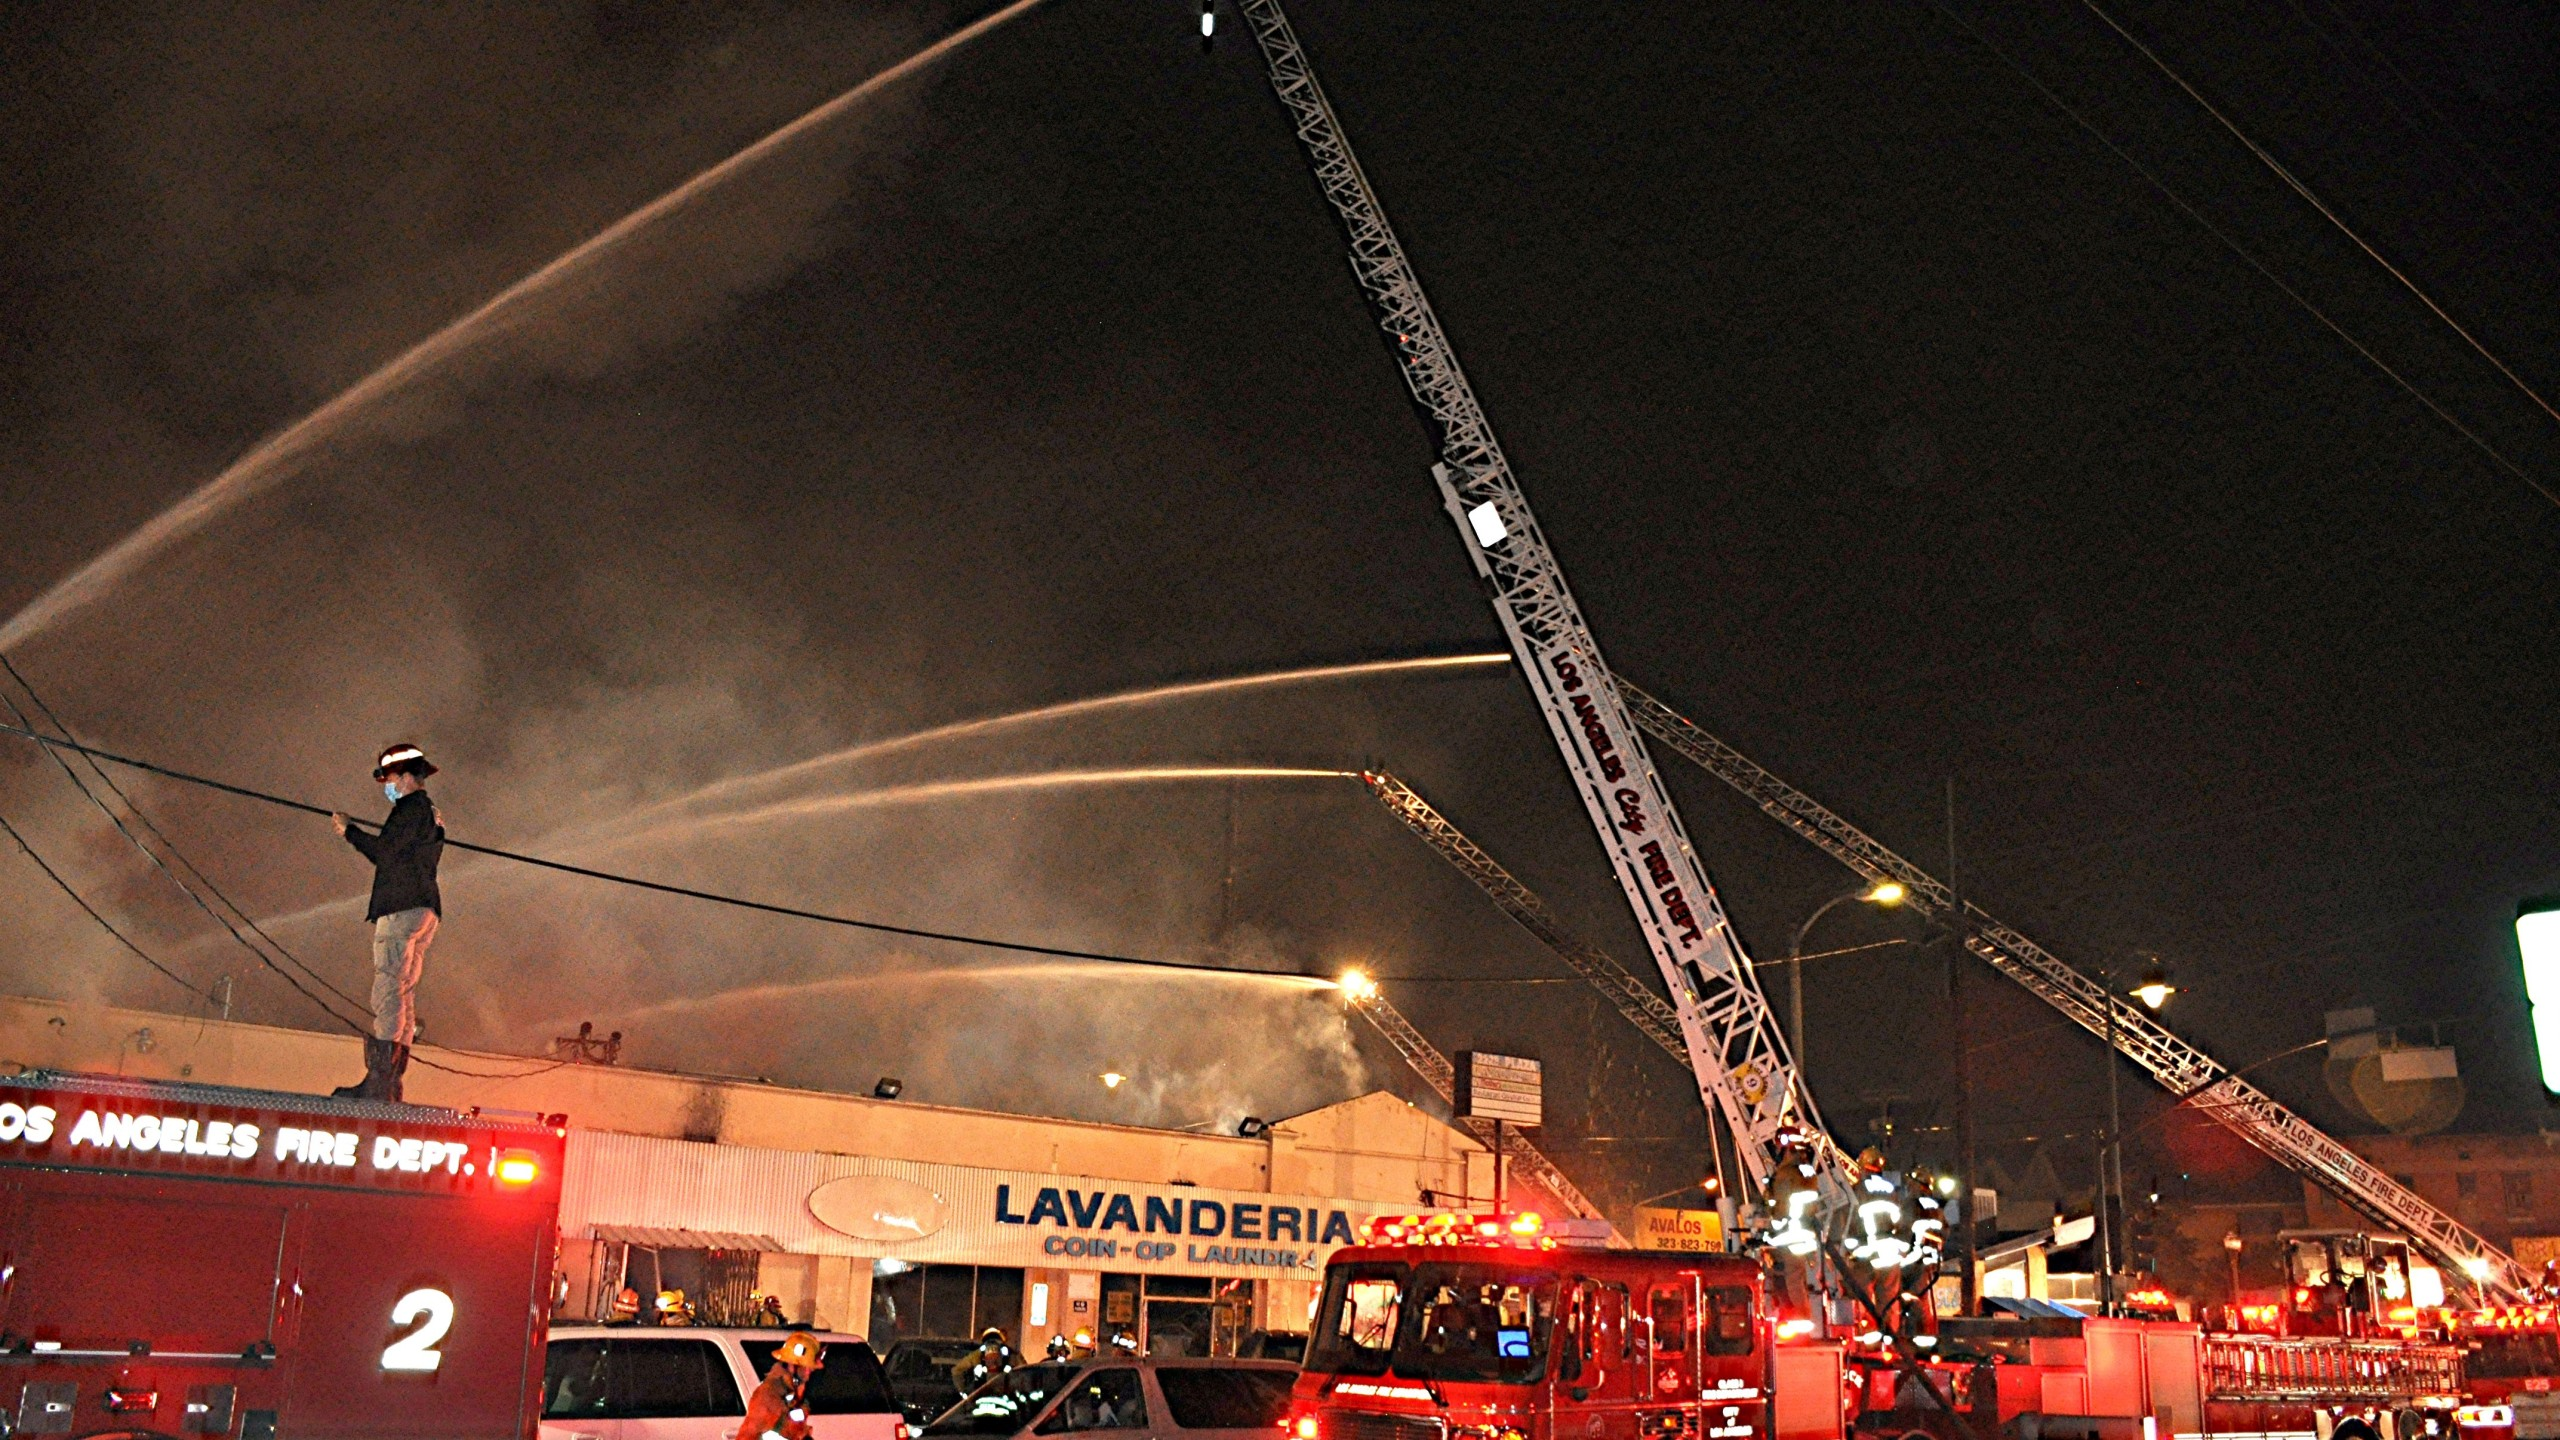 The Los Angeles Fire Department released this photo of crews responding to a blaze in the 2200 block of First Street in Boyle Heights on July 14, 2020.